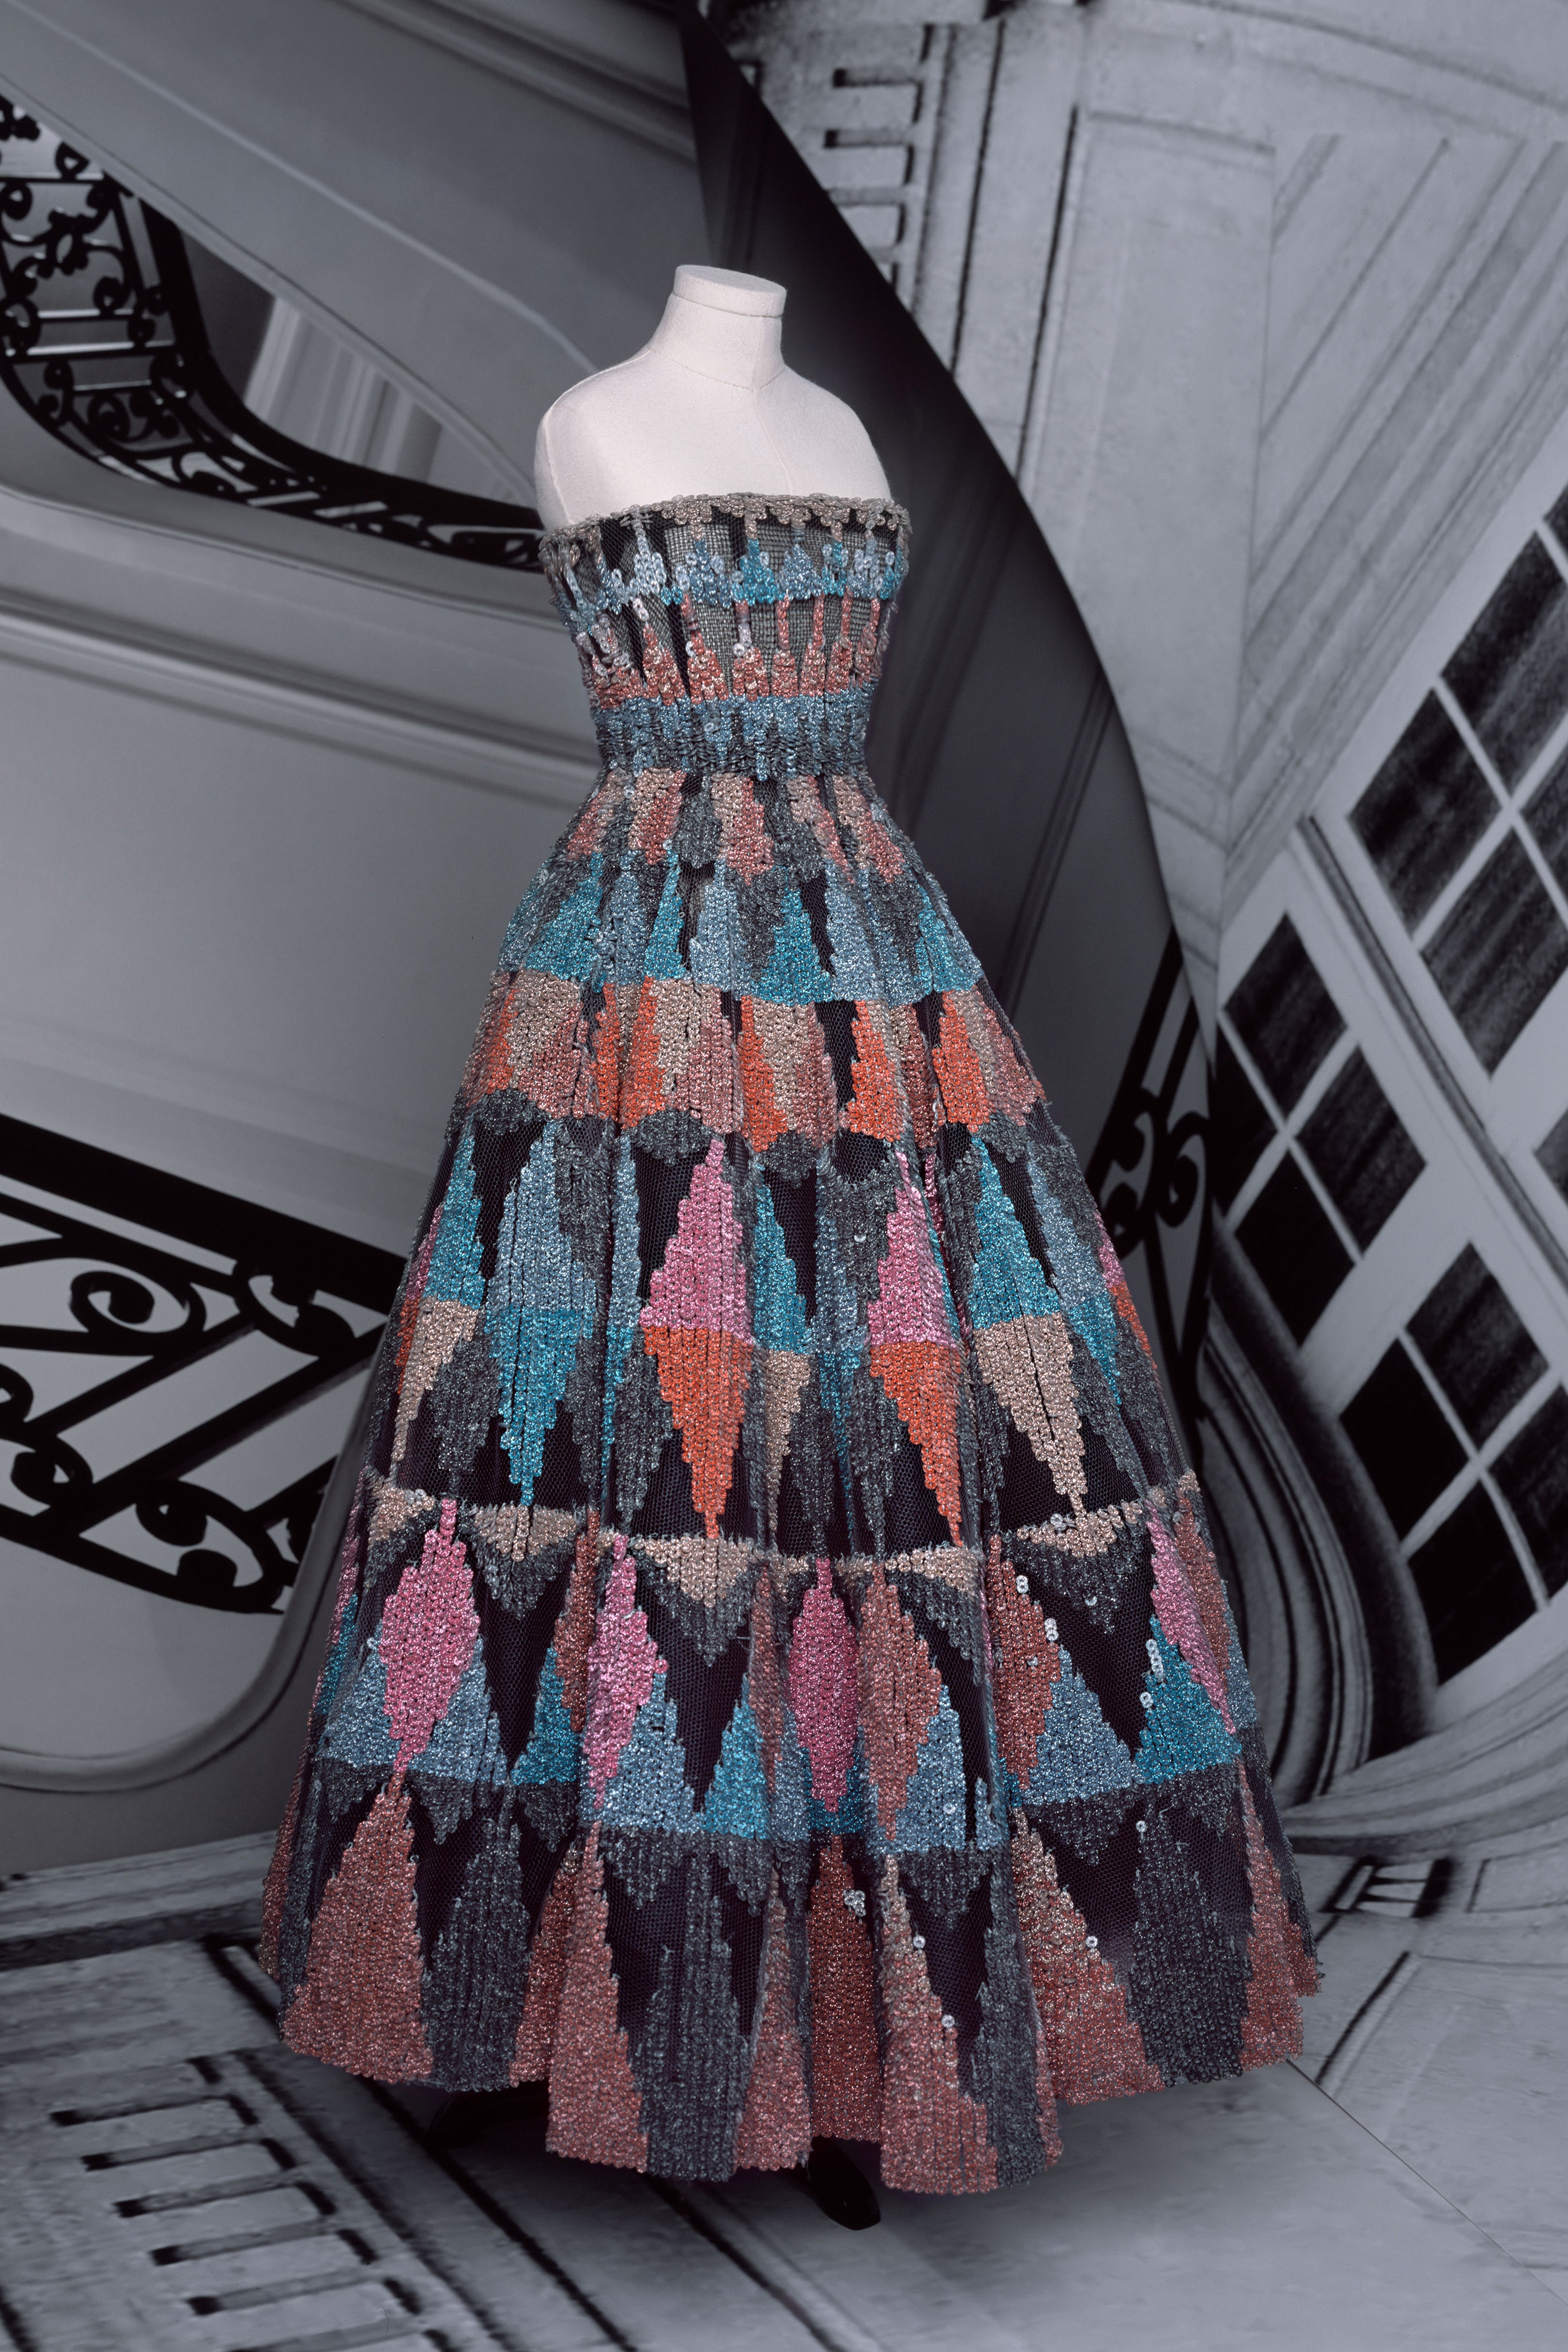 Christian Dior Fall 2020 Couture